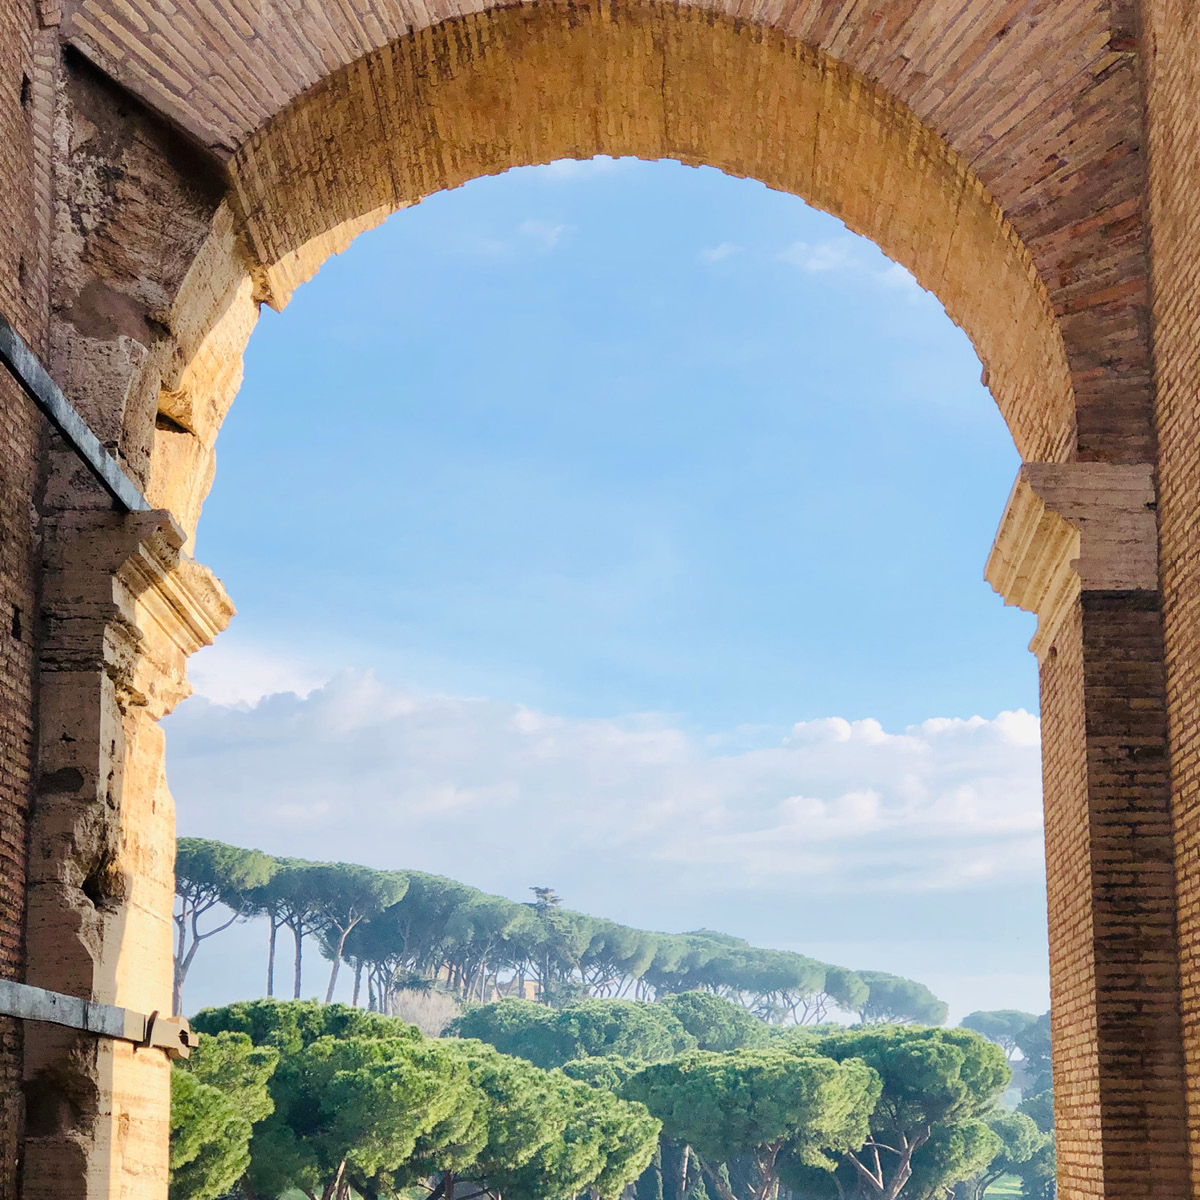 A view from inside the colosseum showing an archway and the trees outside.